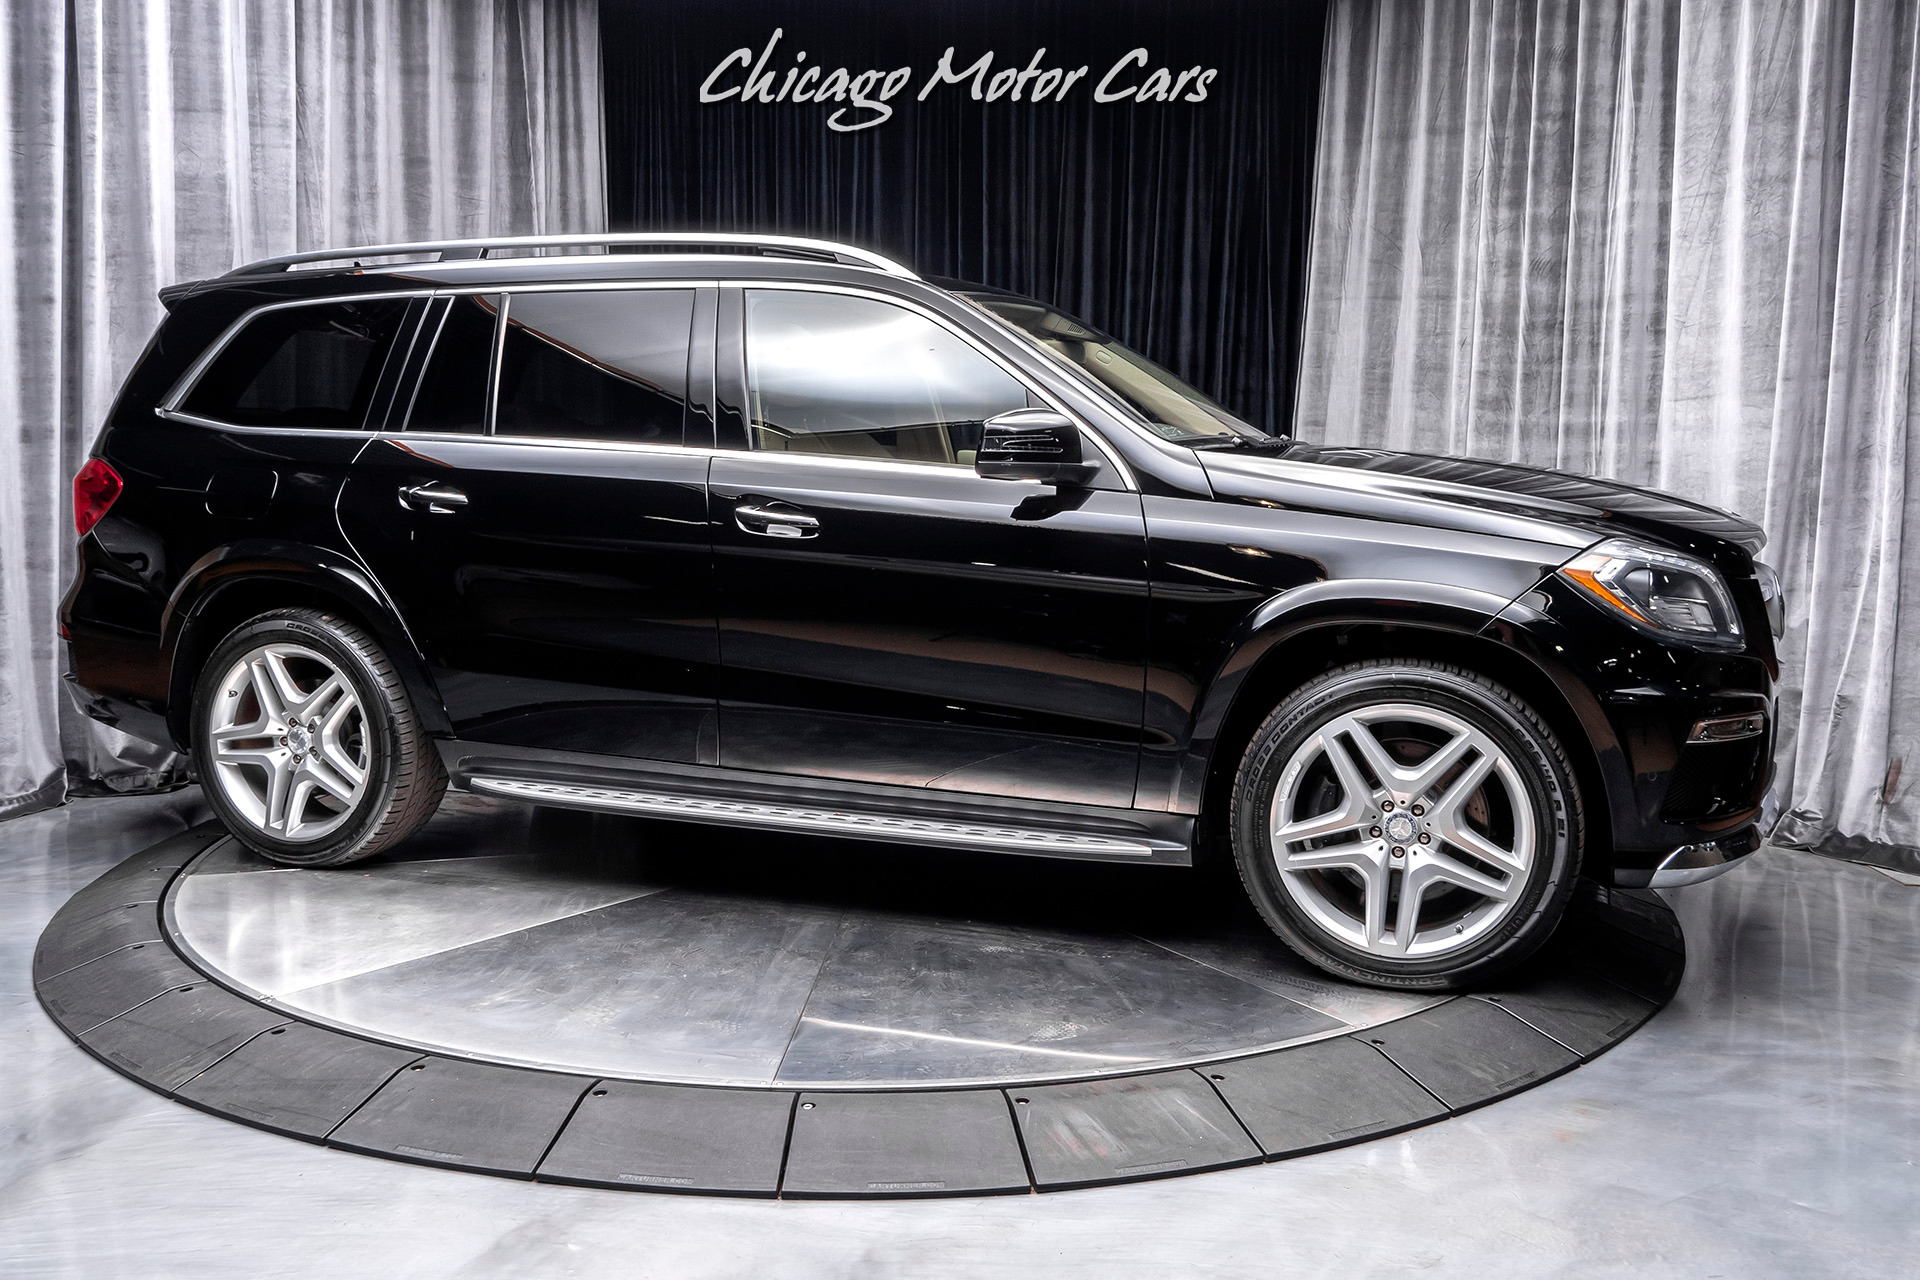 Used-2013-Mercedes-Benz-GL-550-4MATIC-SUV-MSRP-88K